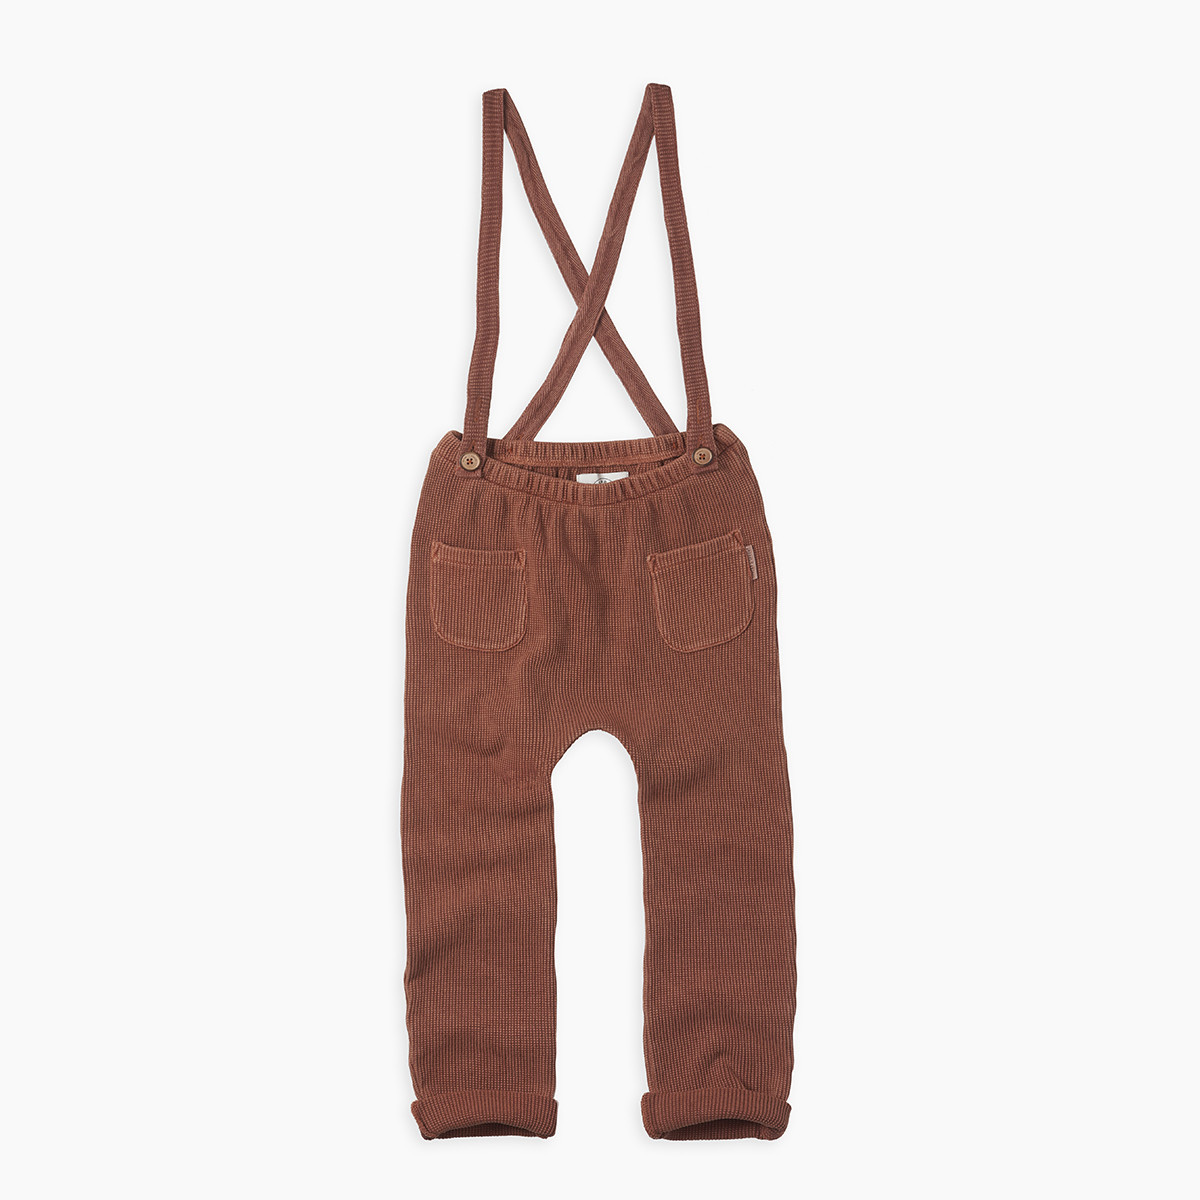 Sproet & Sprout Sproet & Sprout - Waffle Pants Suspensers